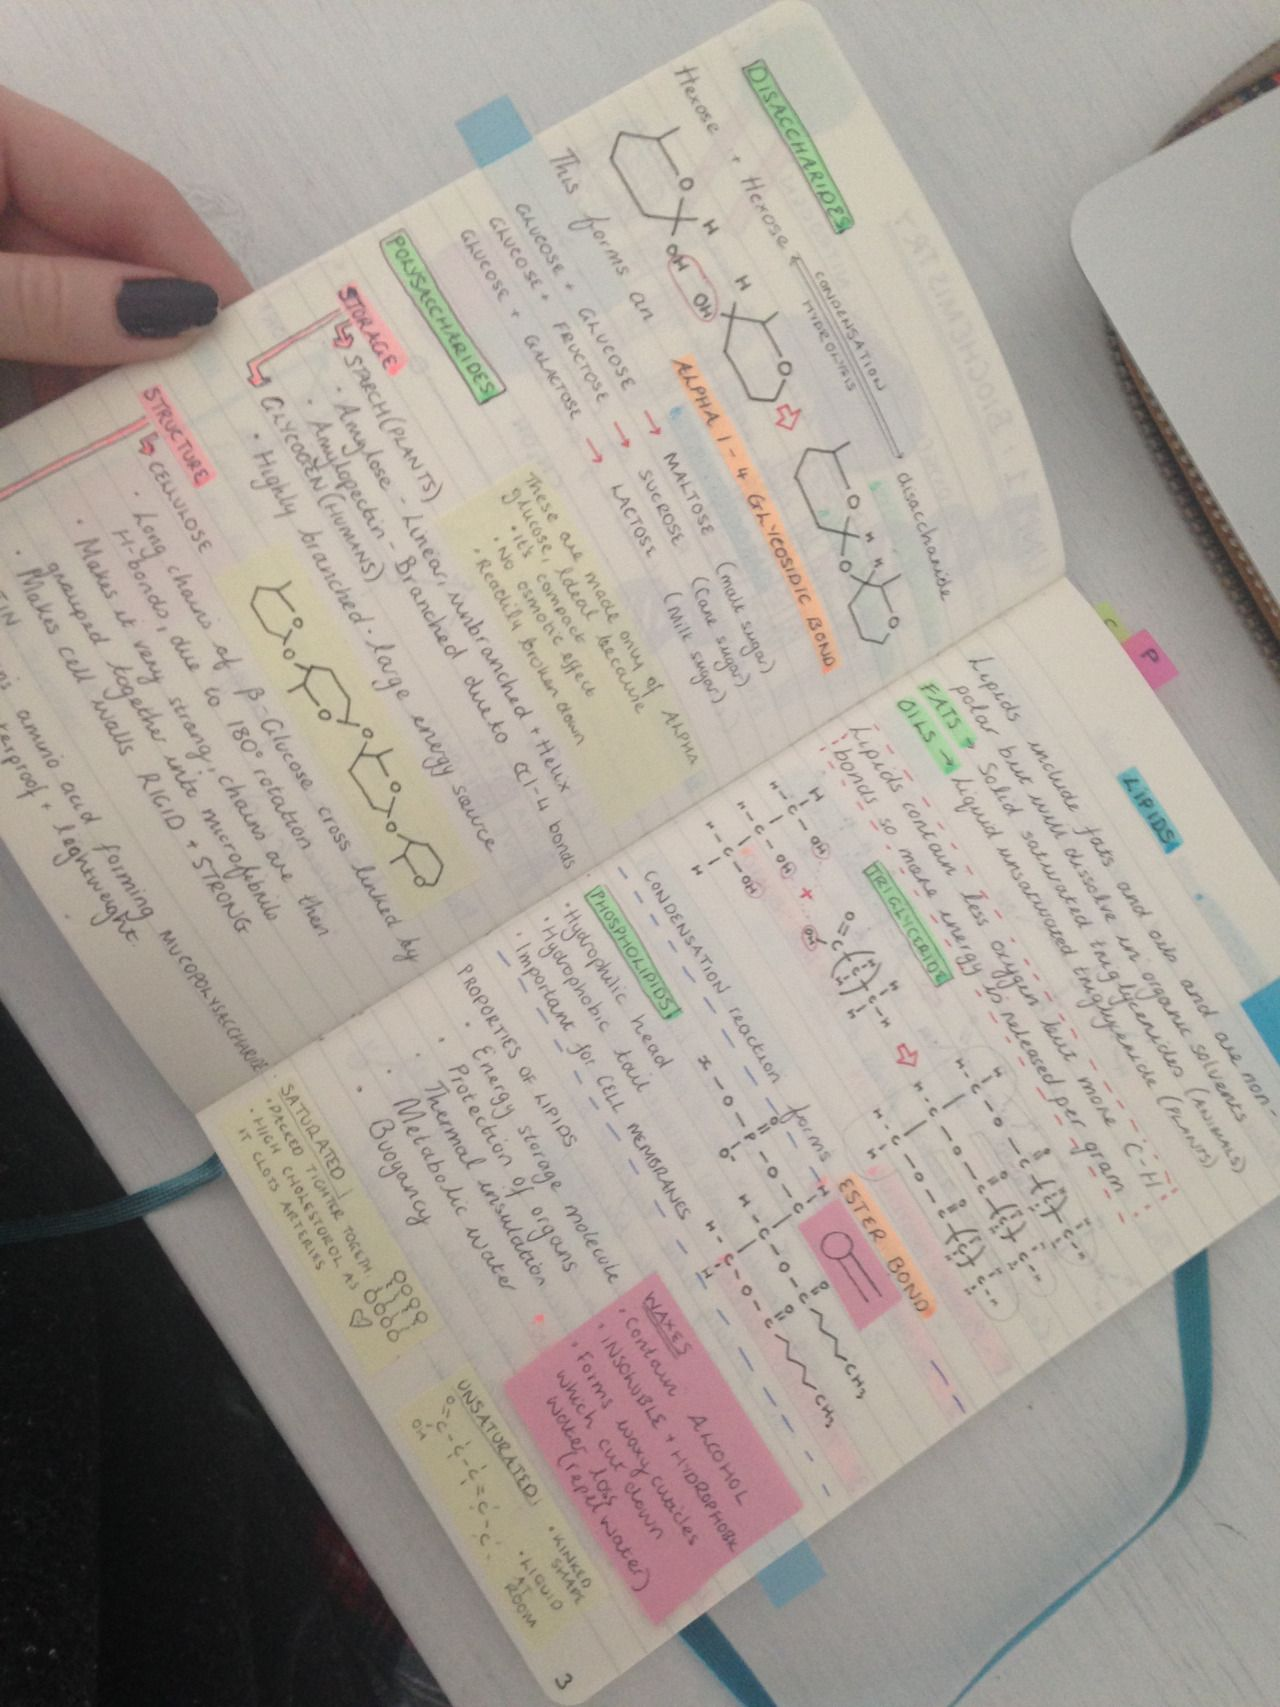 aimingfora tried to condense my biochemistry notes as much as